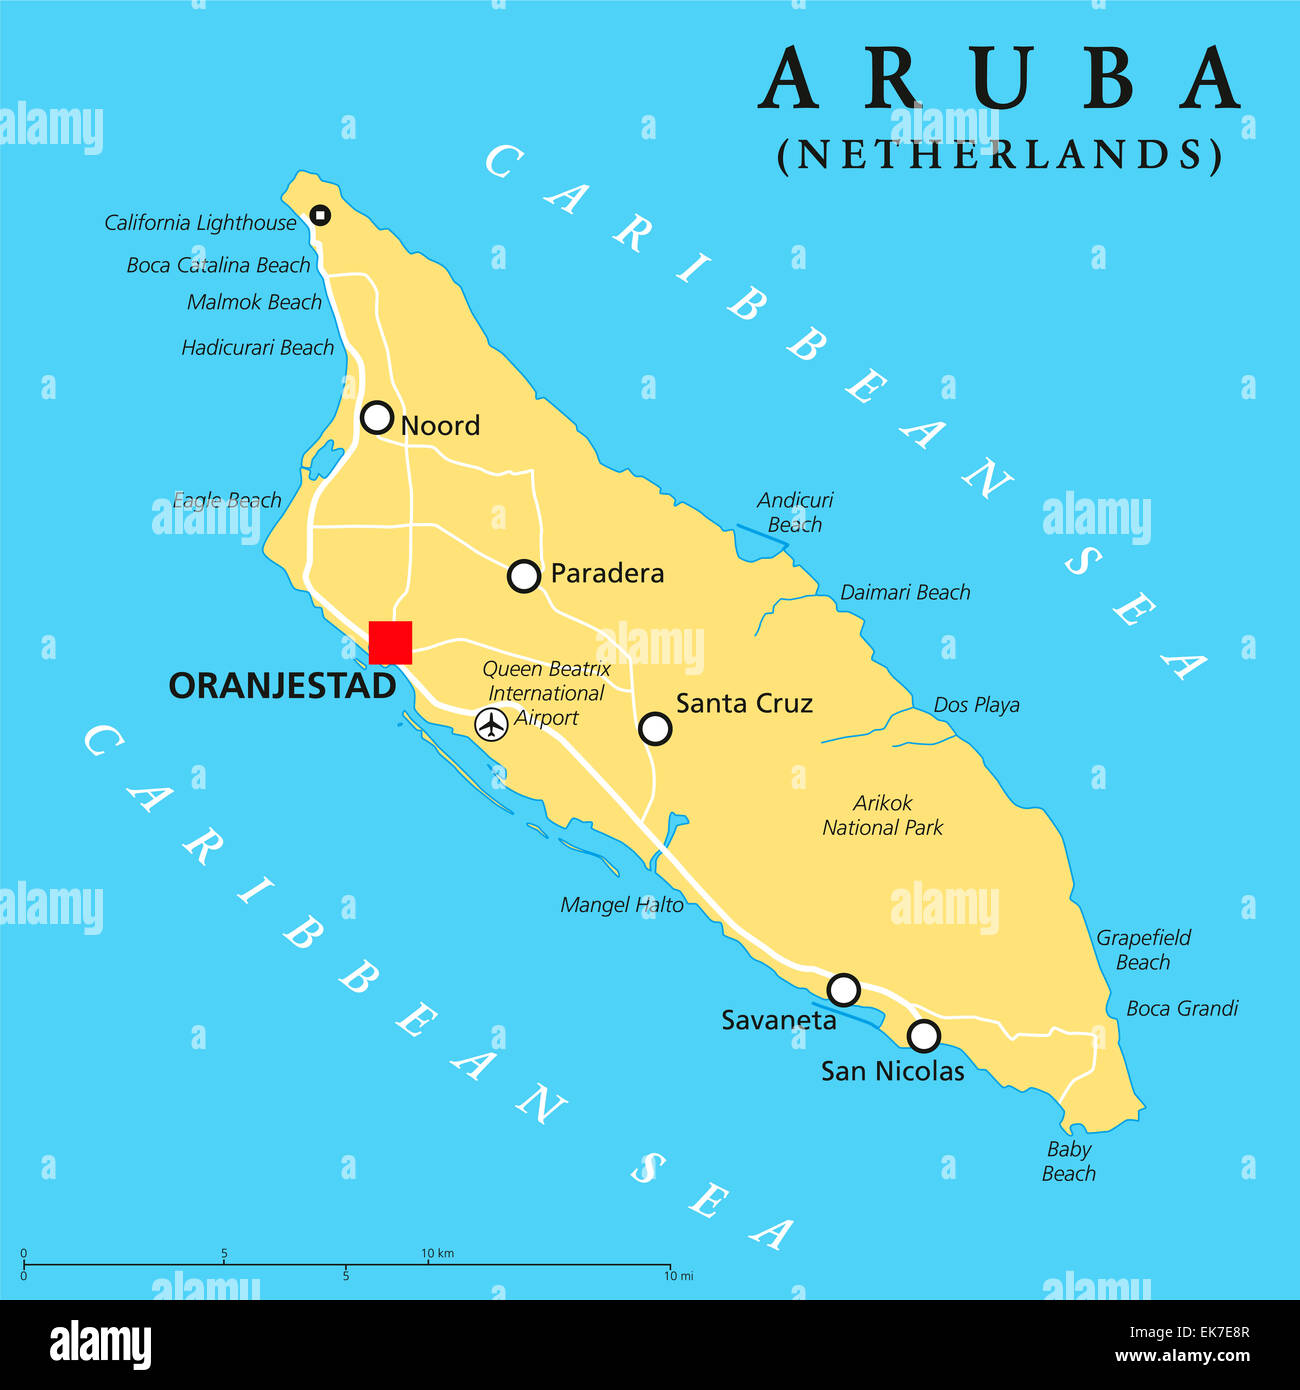 Aruba Beaches Map Best Beach On The World 2017